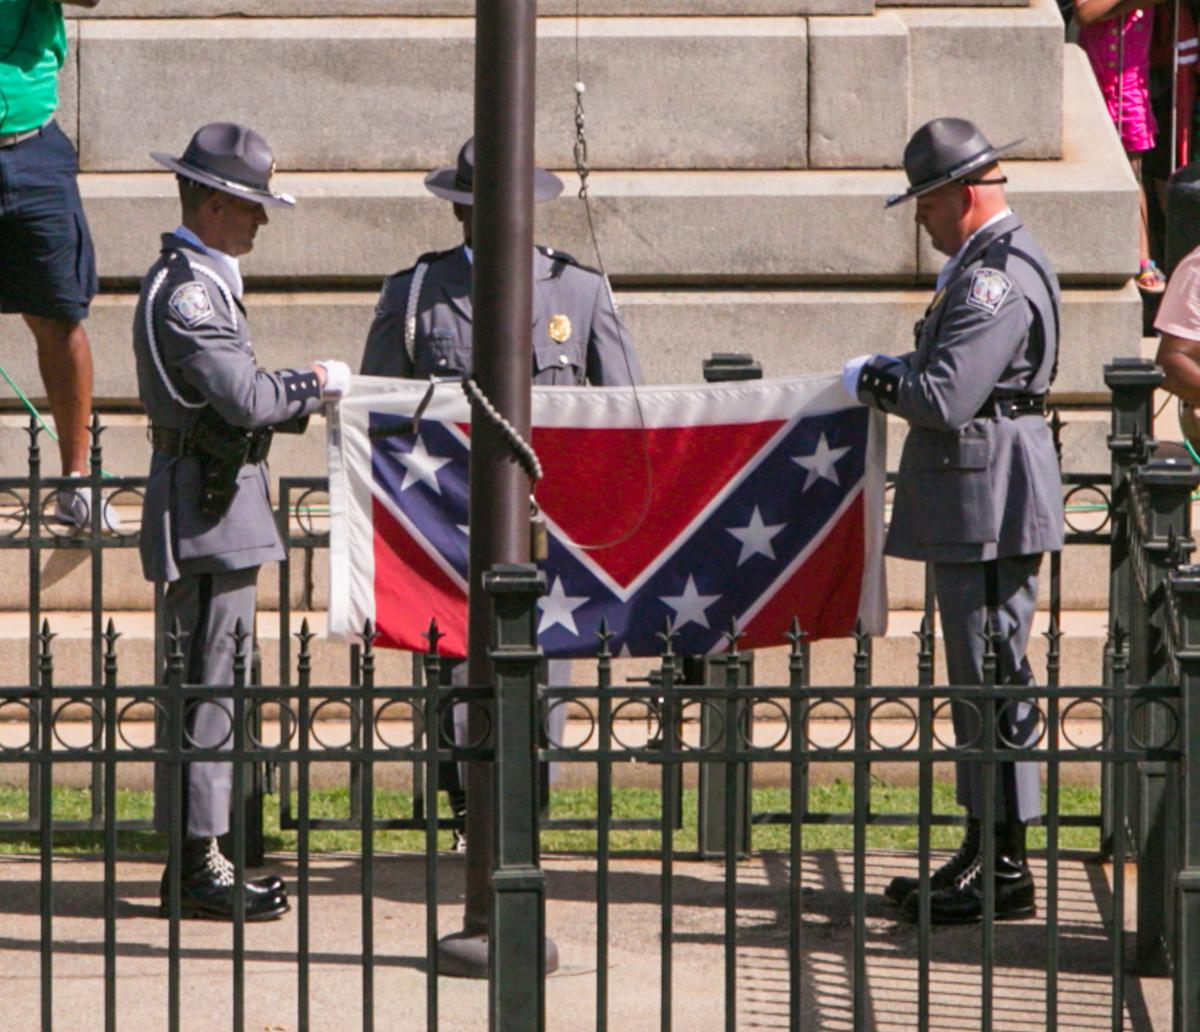 A dark piece of history confederate battle flag symbolizes racism confederate flag at south carolina state house biocorpaavc